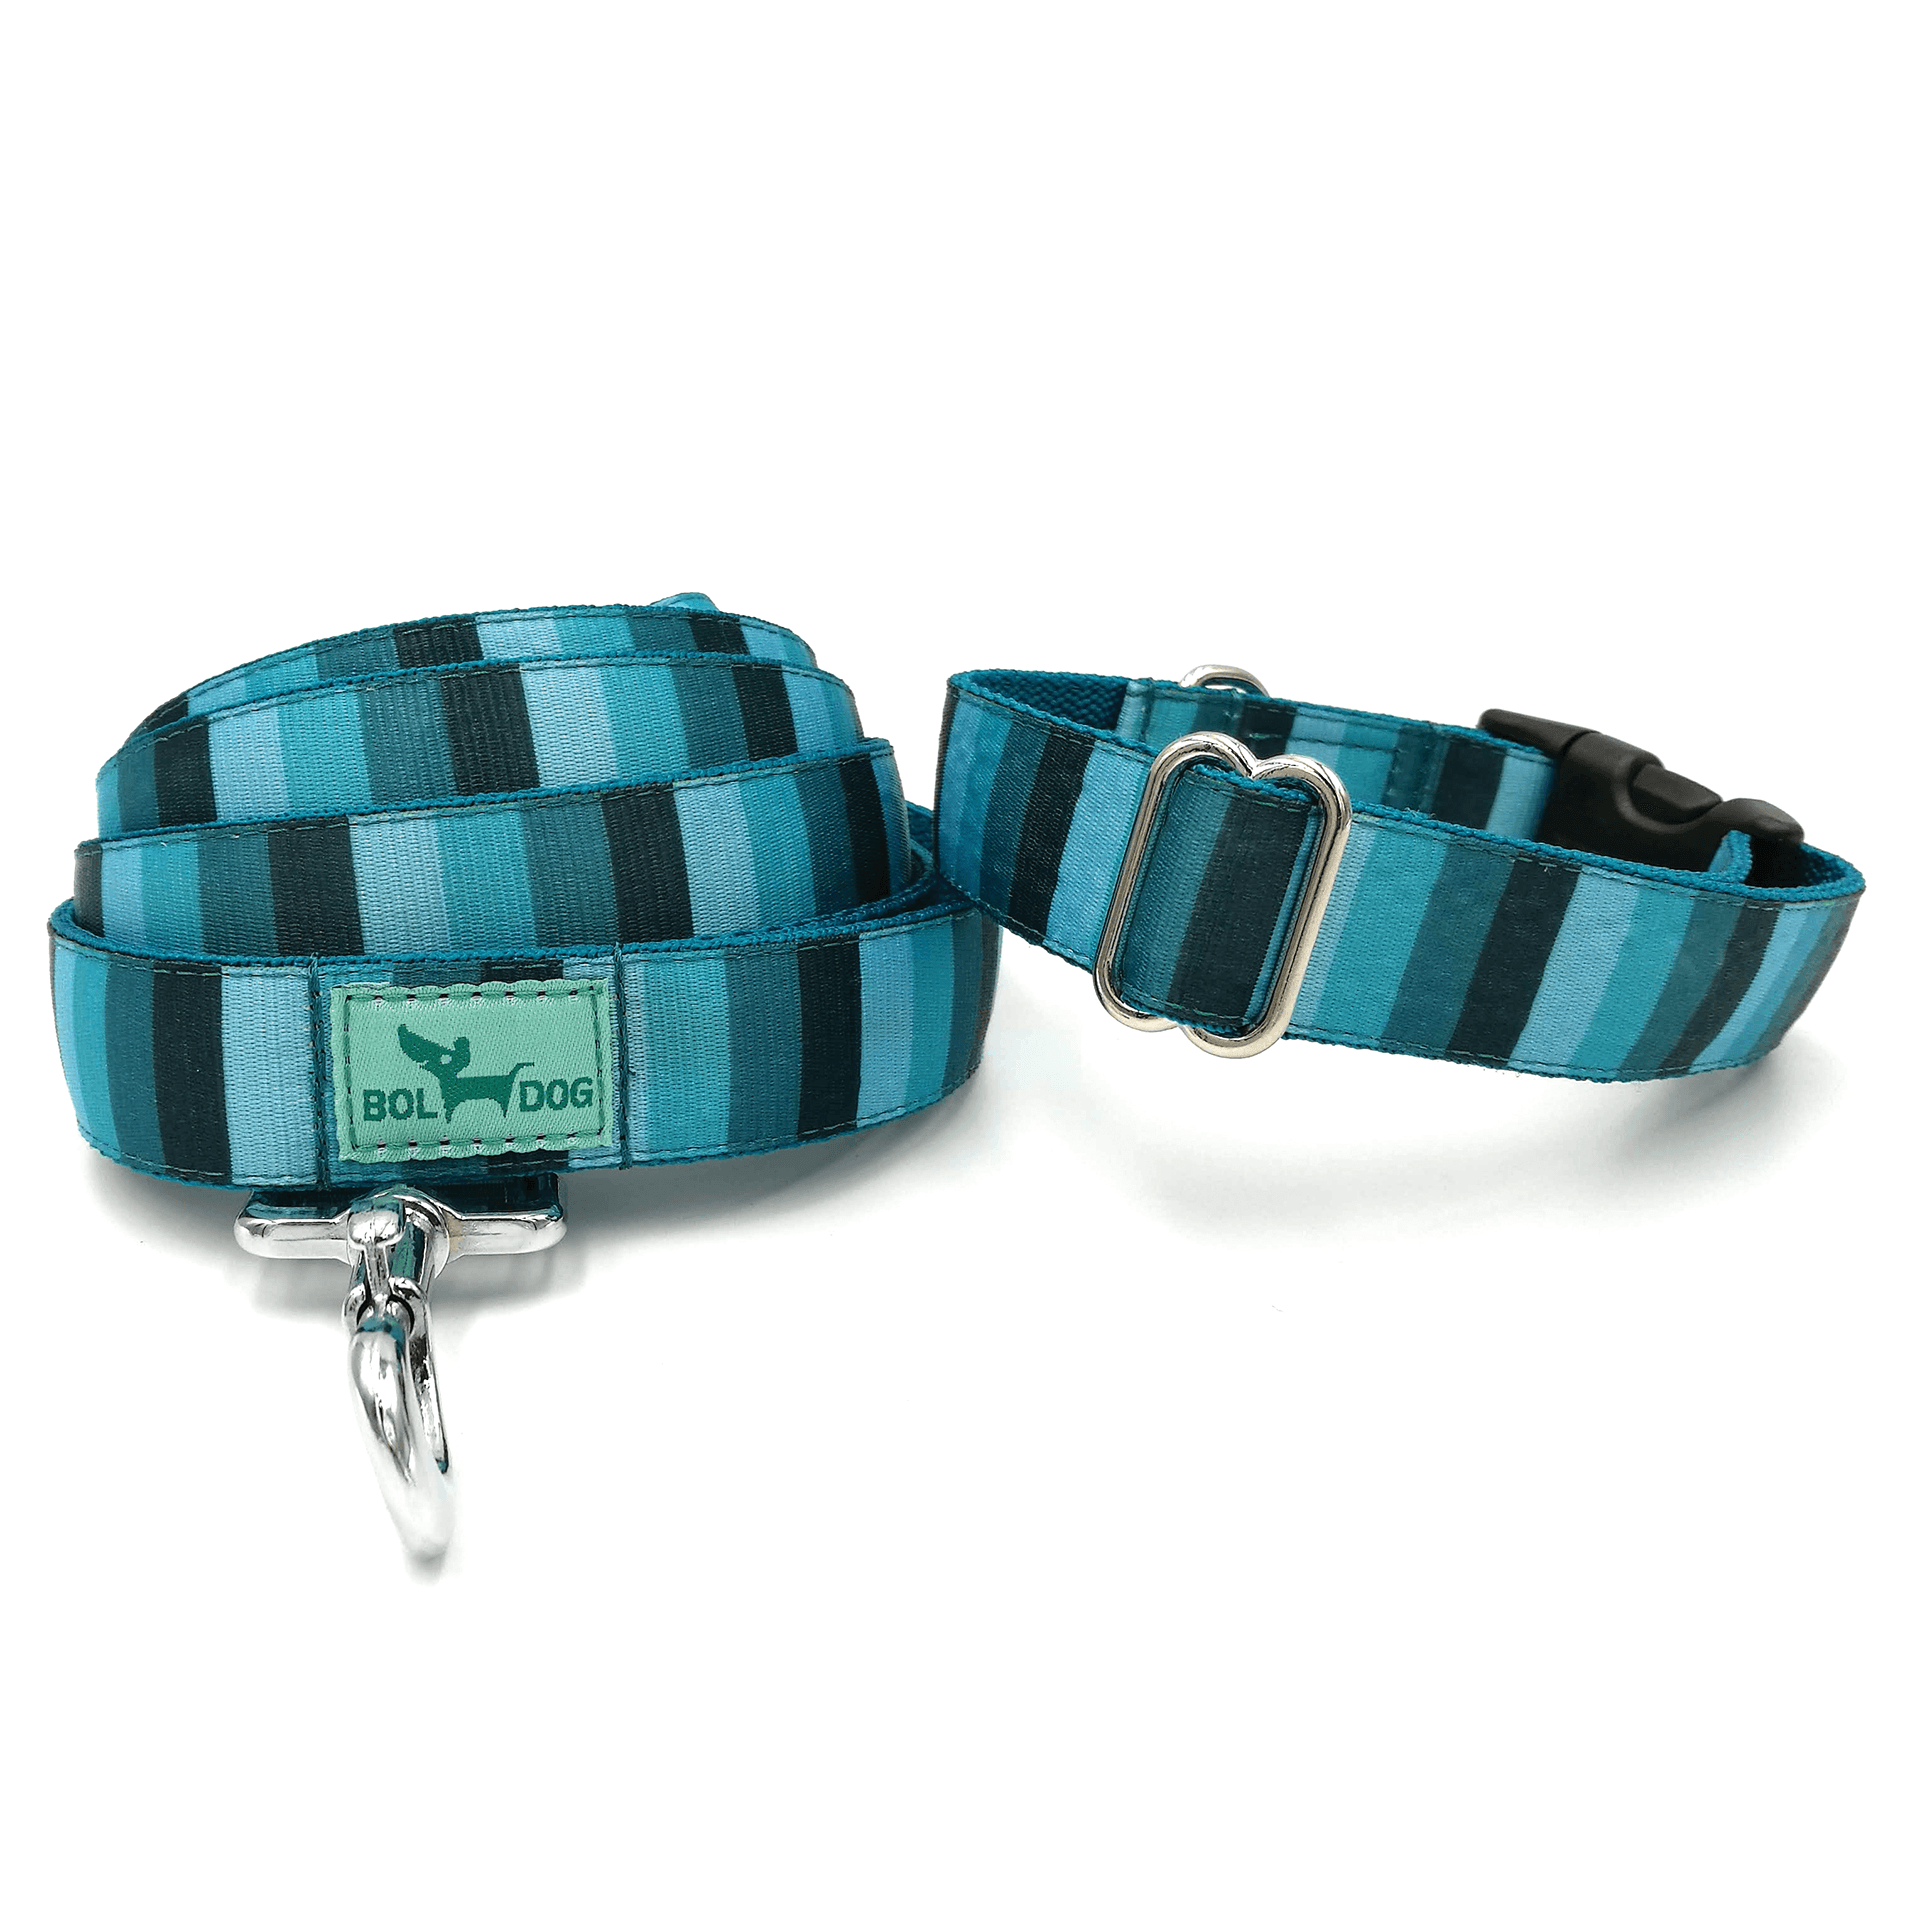 blue striped patterned dog collar and leash set